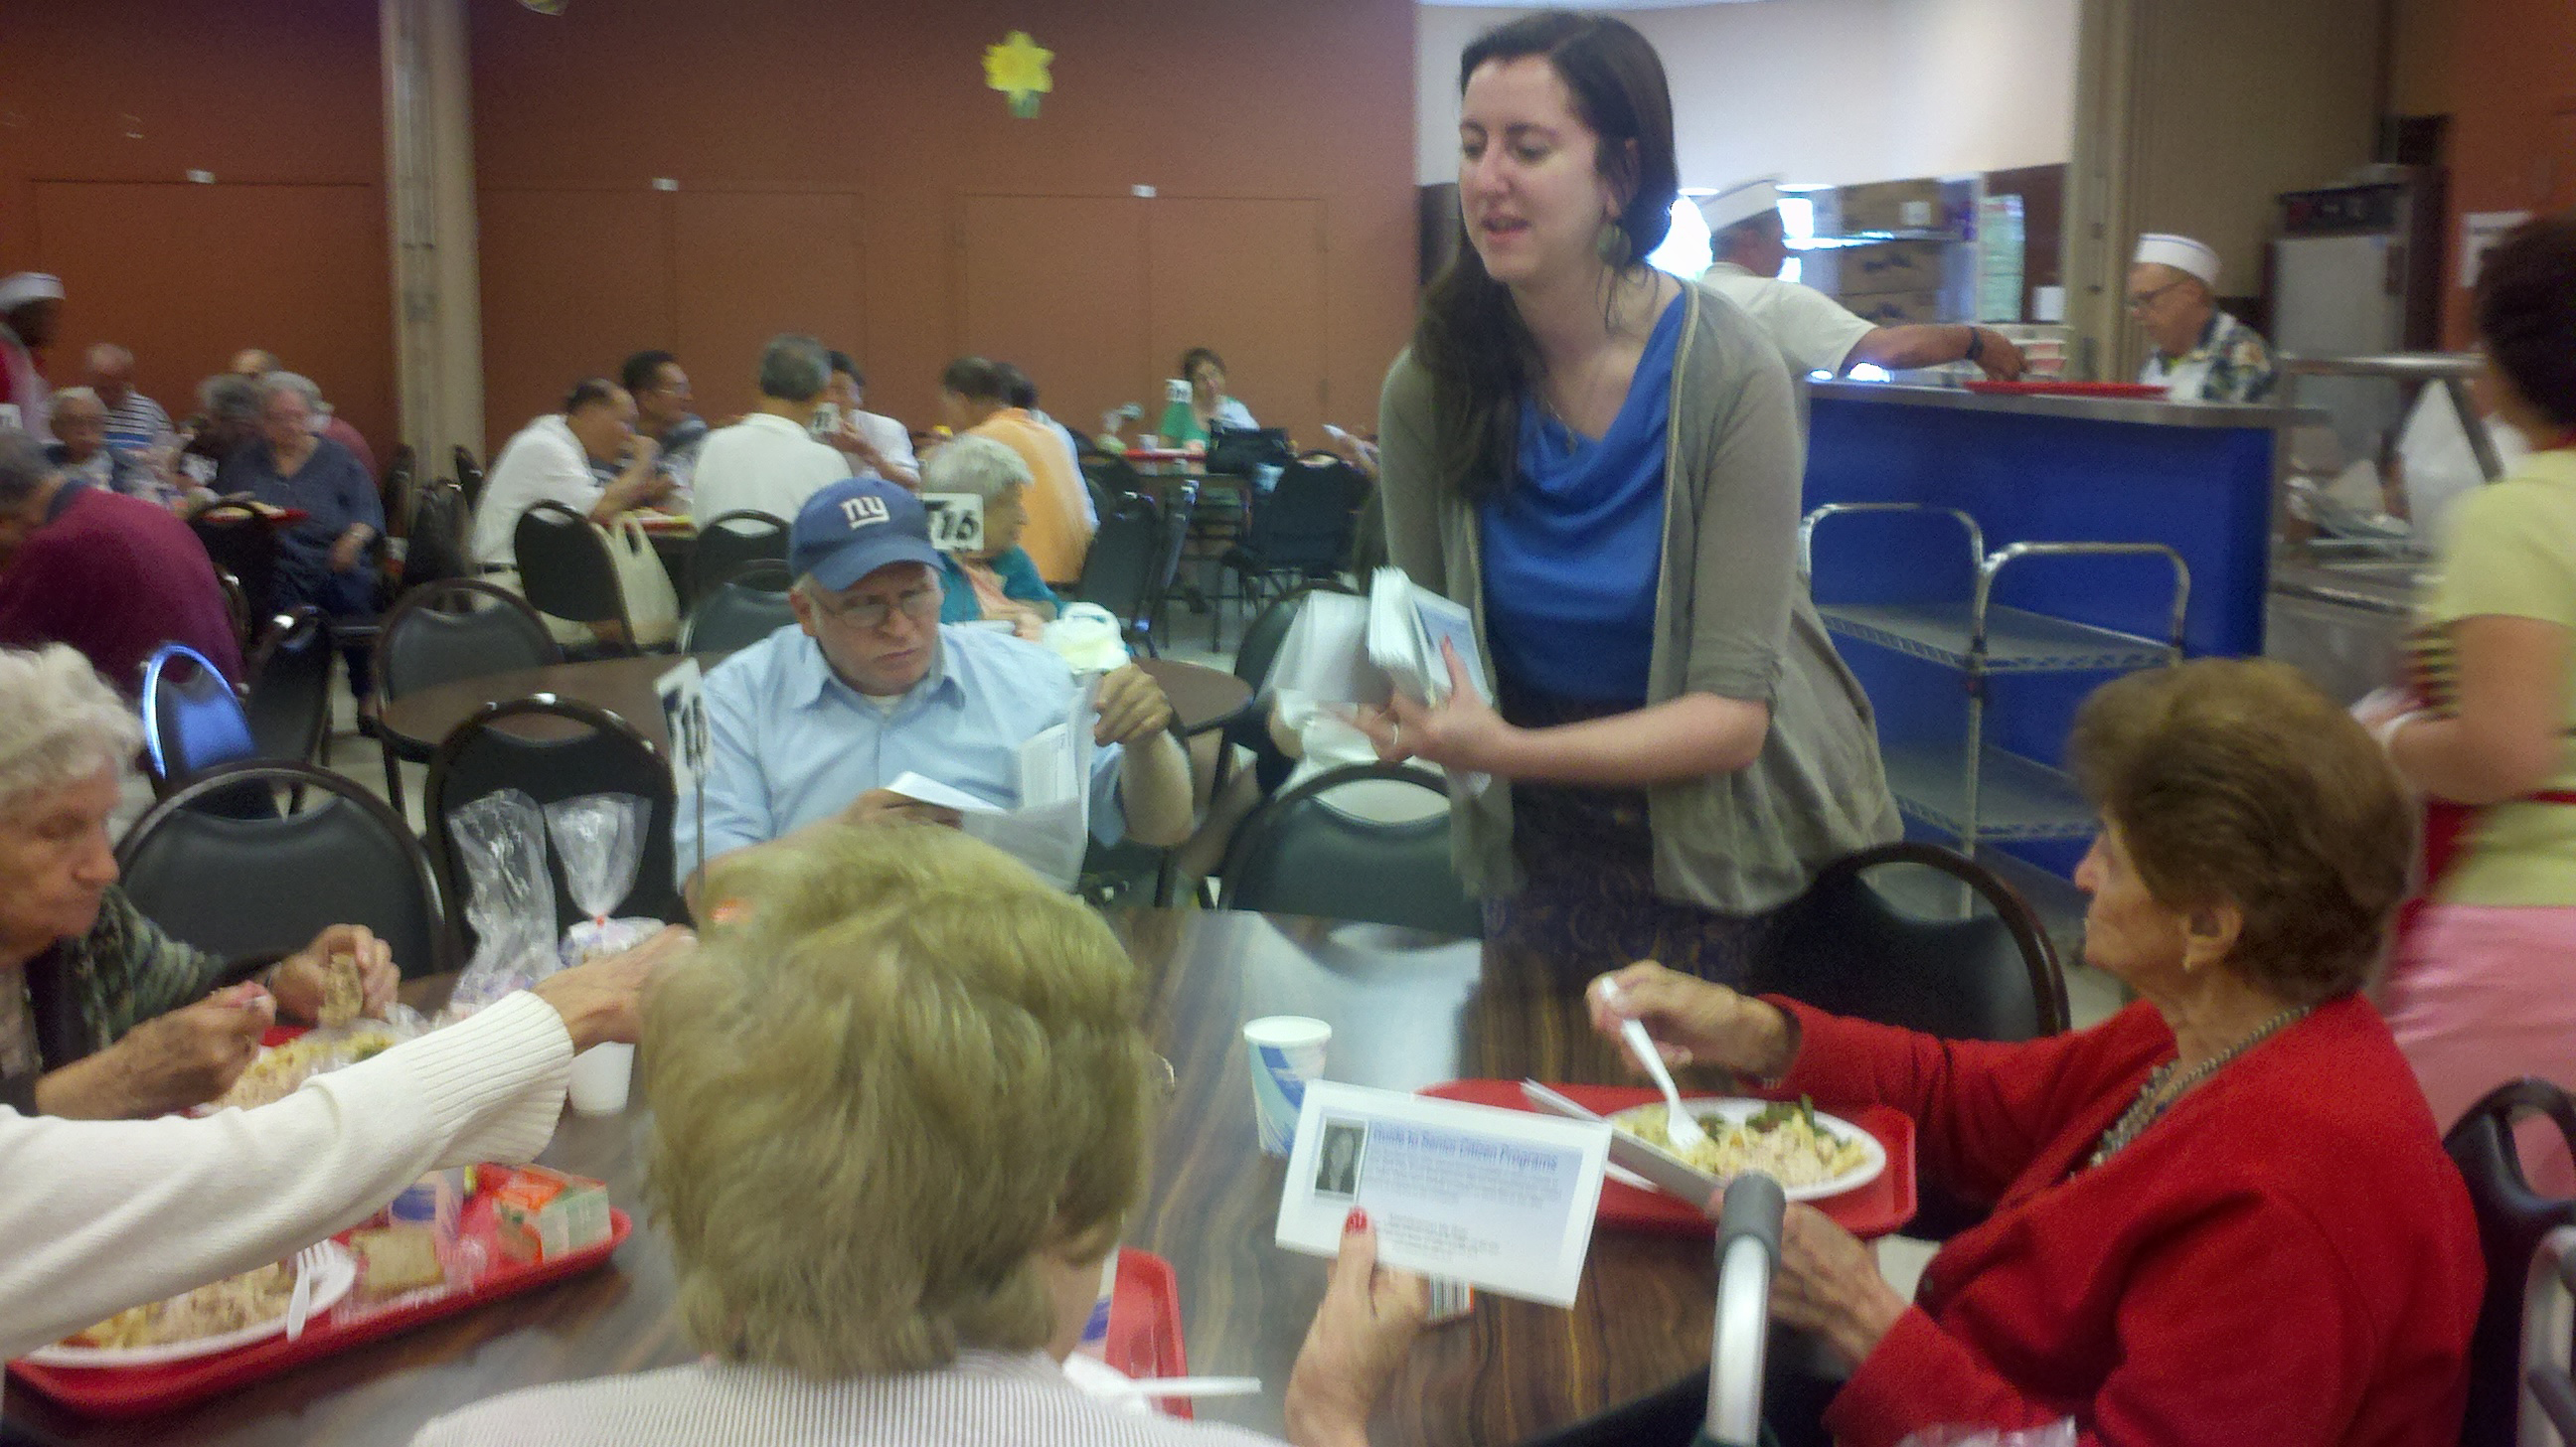 Assemblywoman Nily Rozic visited the Bayside Senior Center to provide seniors with assistance on services such as Medicare, SNAP, and SCRIE.